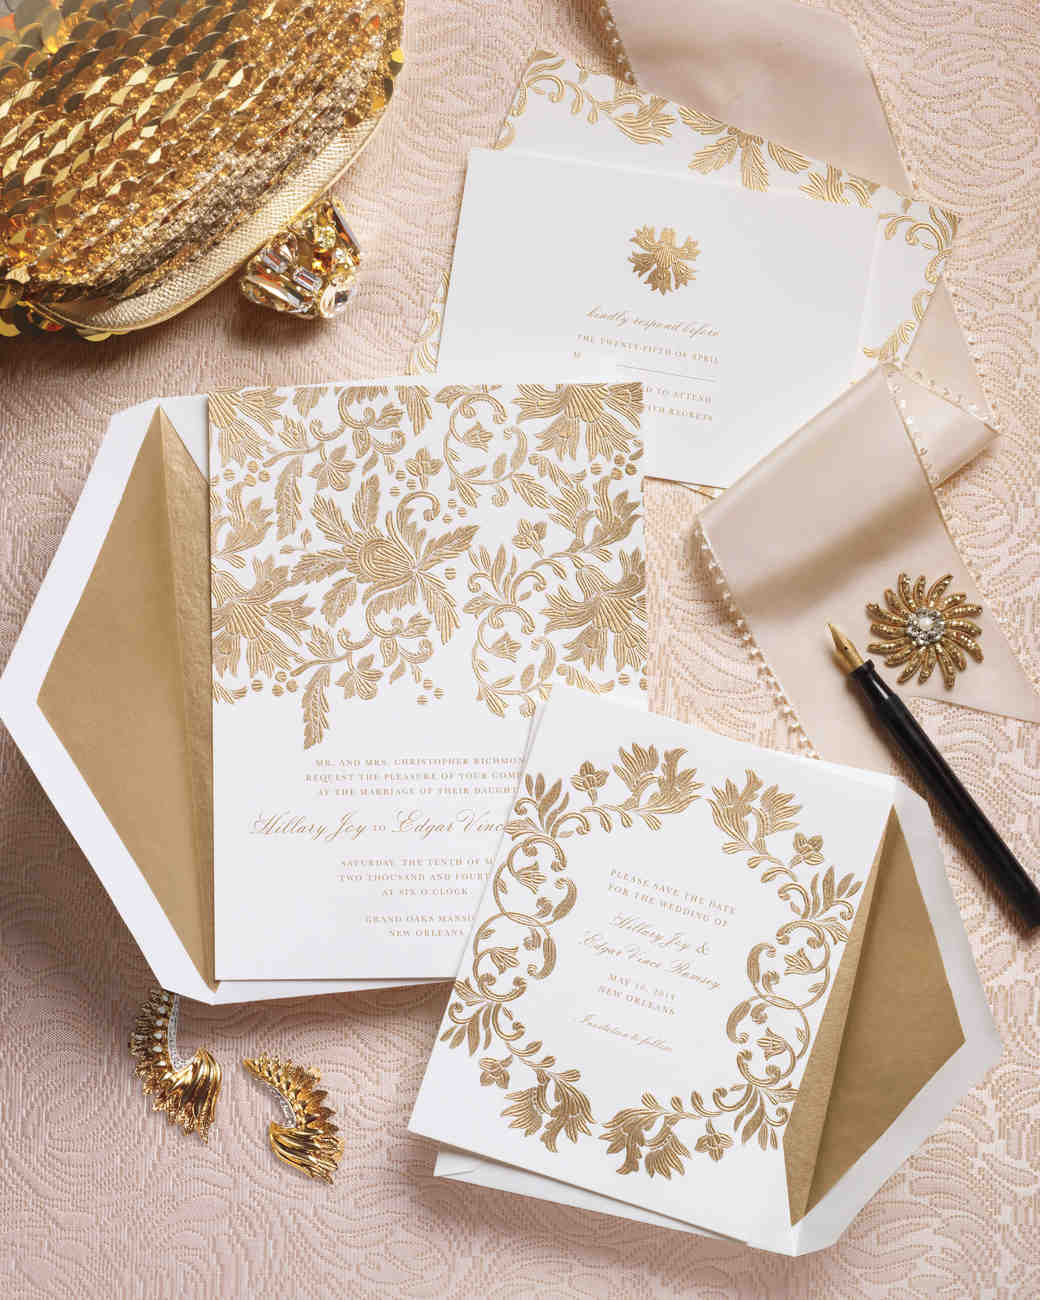 Wedding Invitations Inspired by Our Favorite Fashion Trends | Martha ...